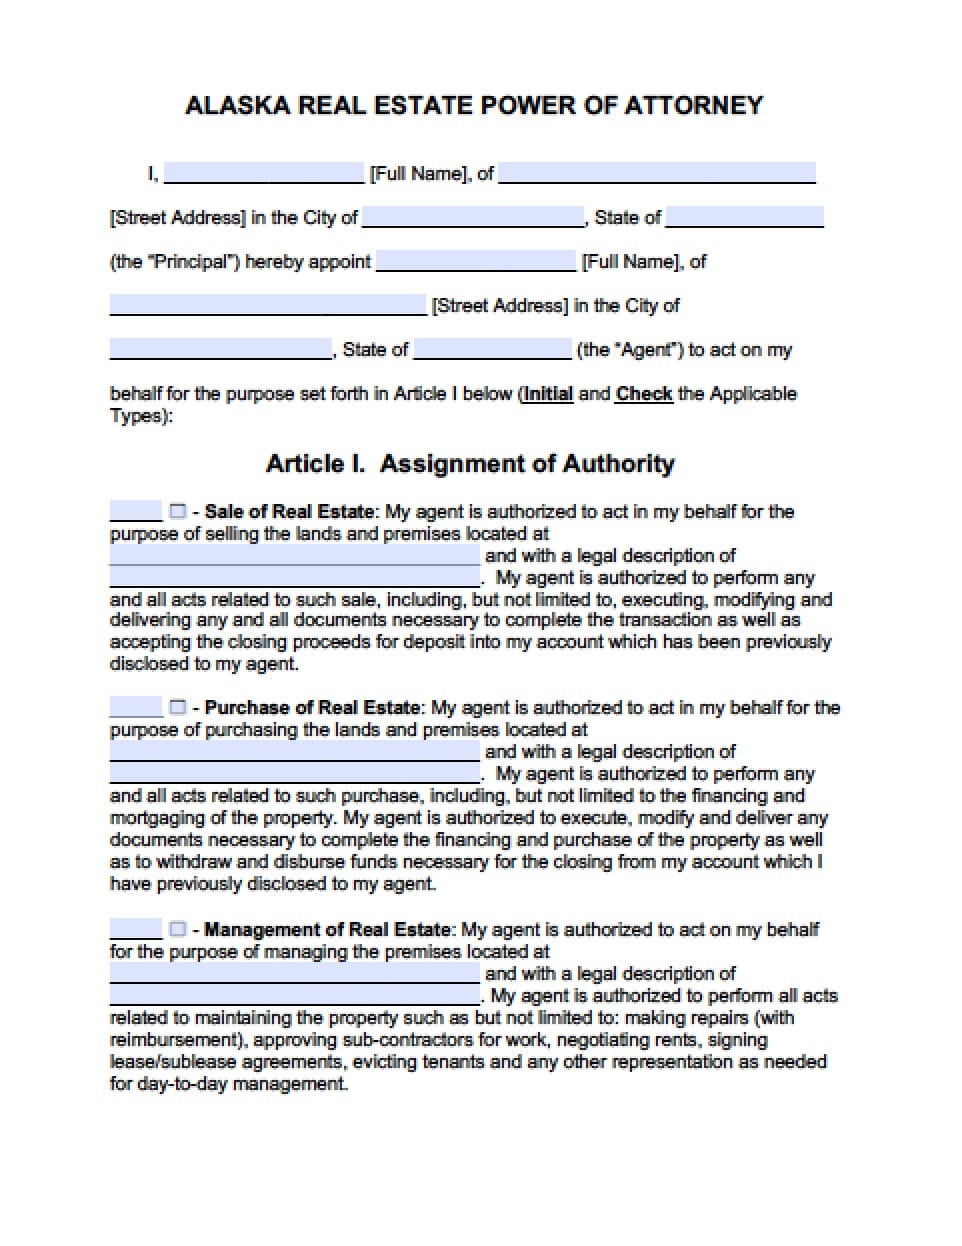 Alaska Real Estate Only Power Of Attorney Form Power Of